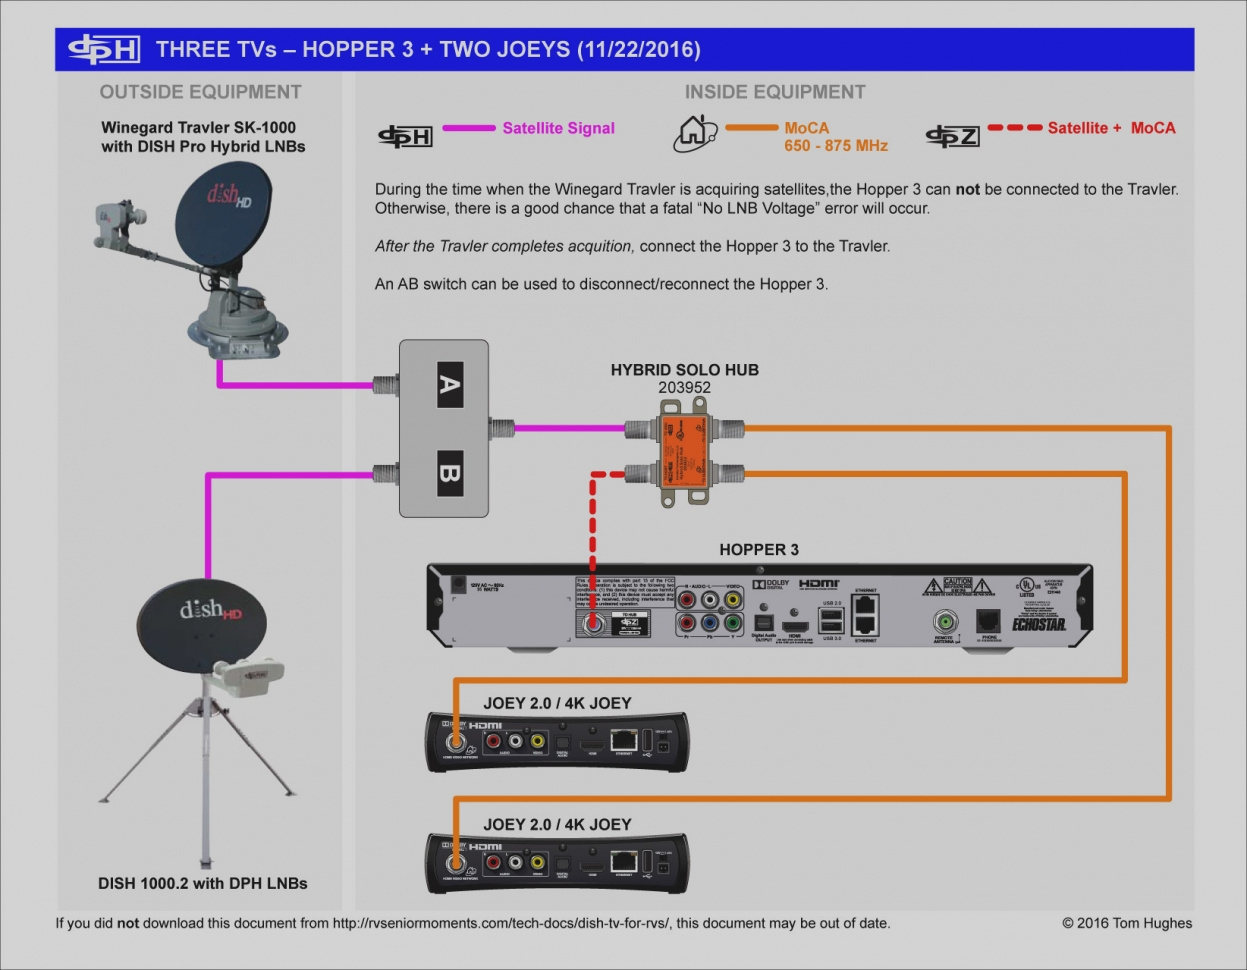 dish network cable diagrams auto electrical wiring diagram dish network cable diagrams [ 1247 x 970 Pixel ]